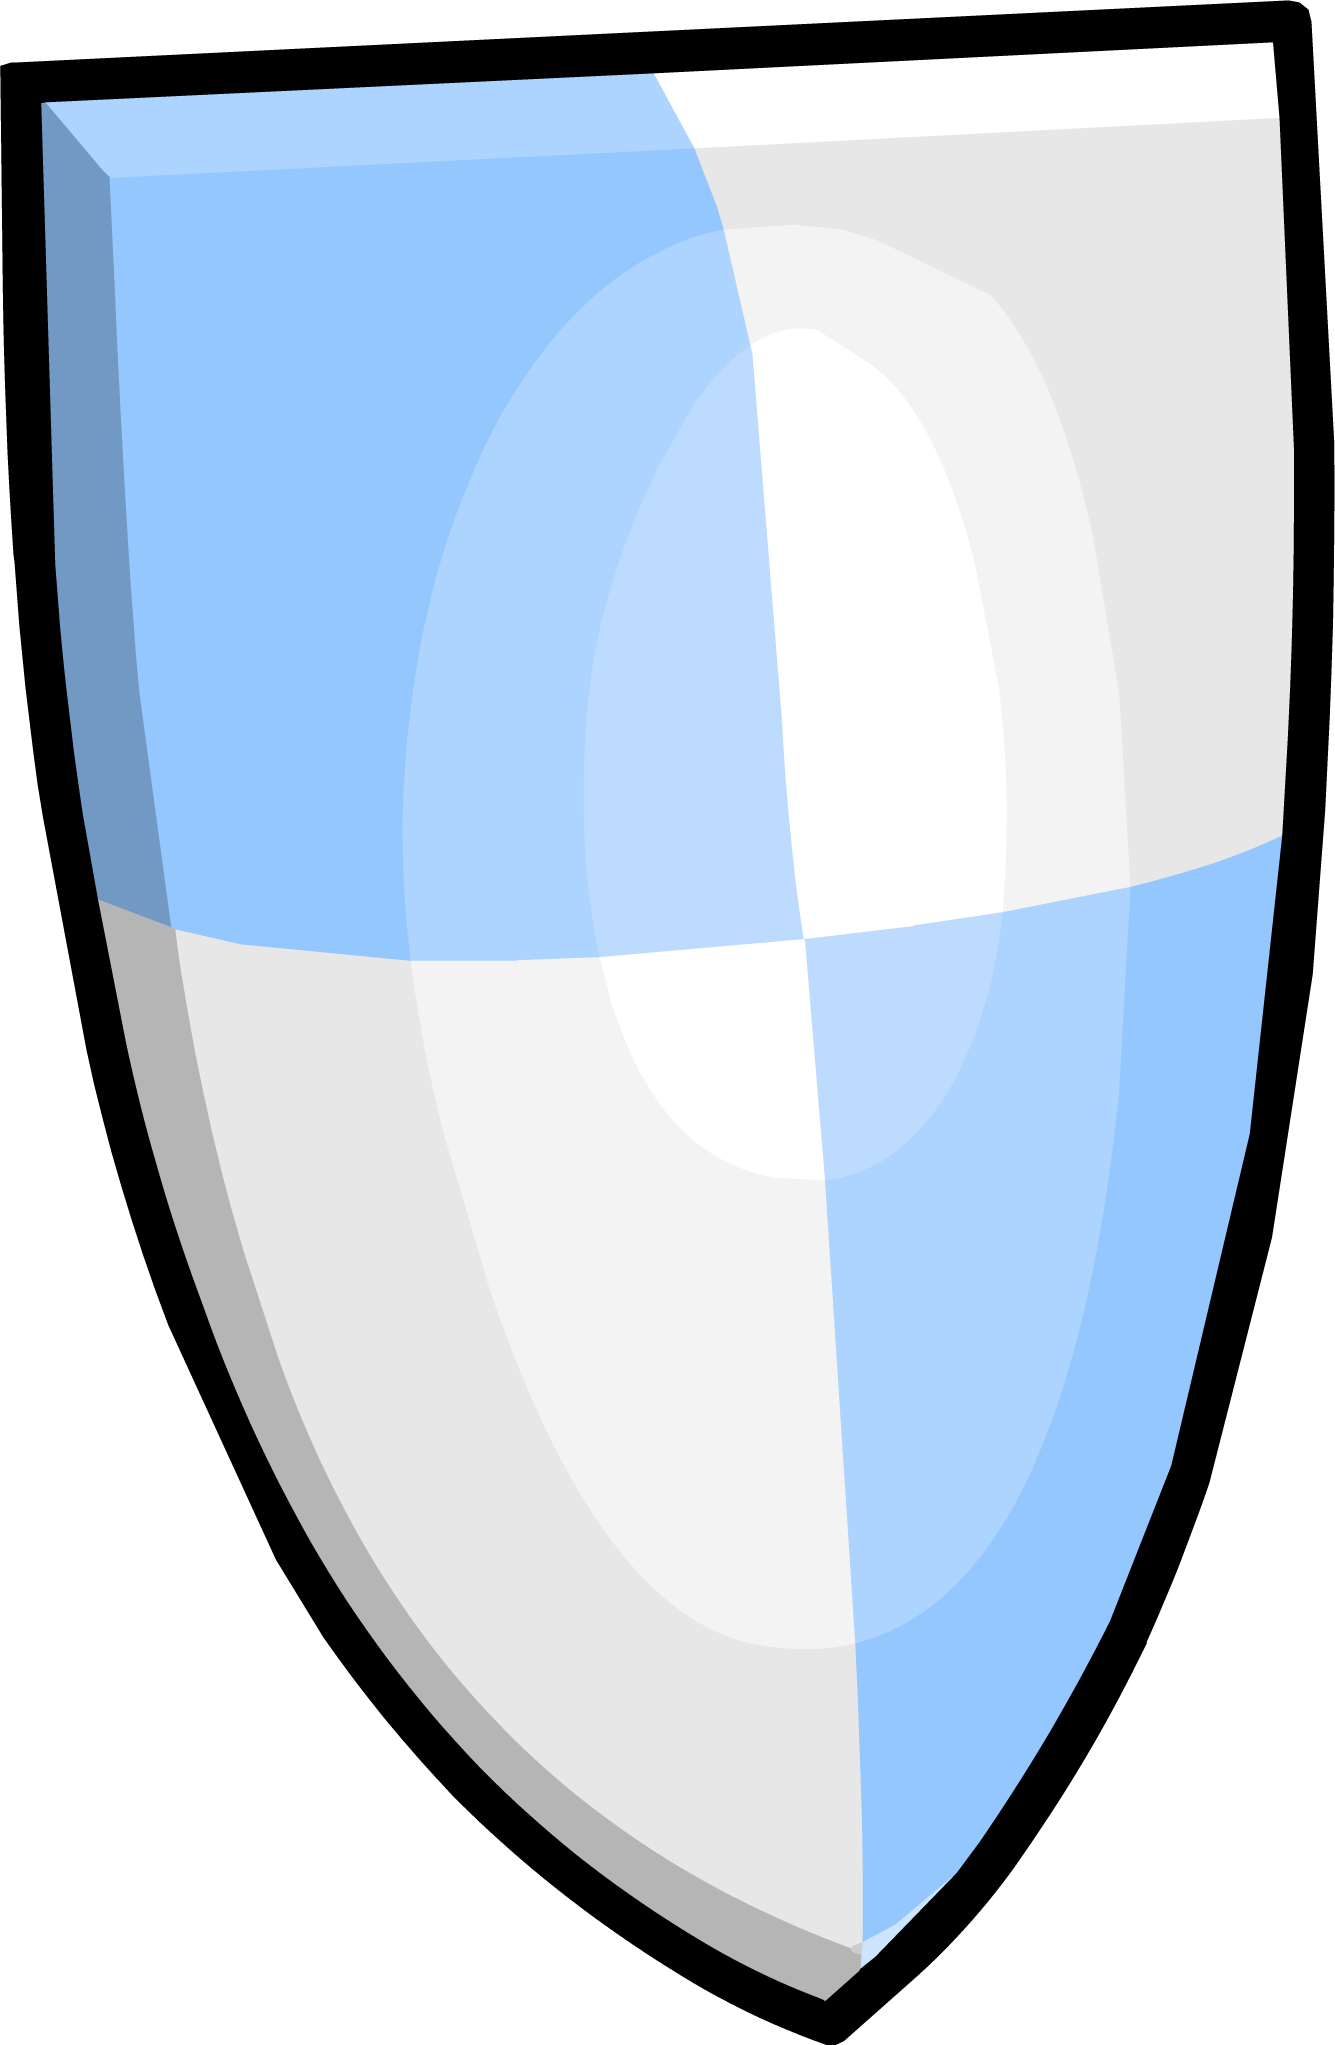 Blue Pastel Shield